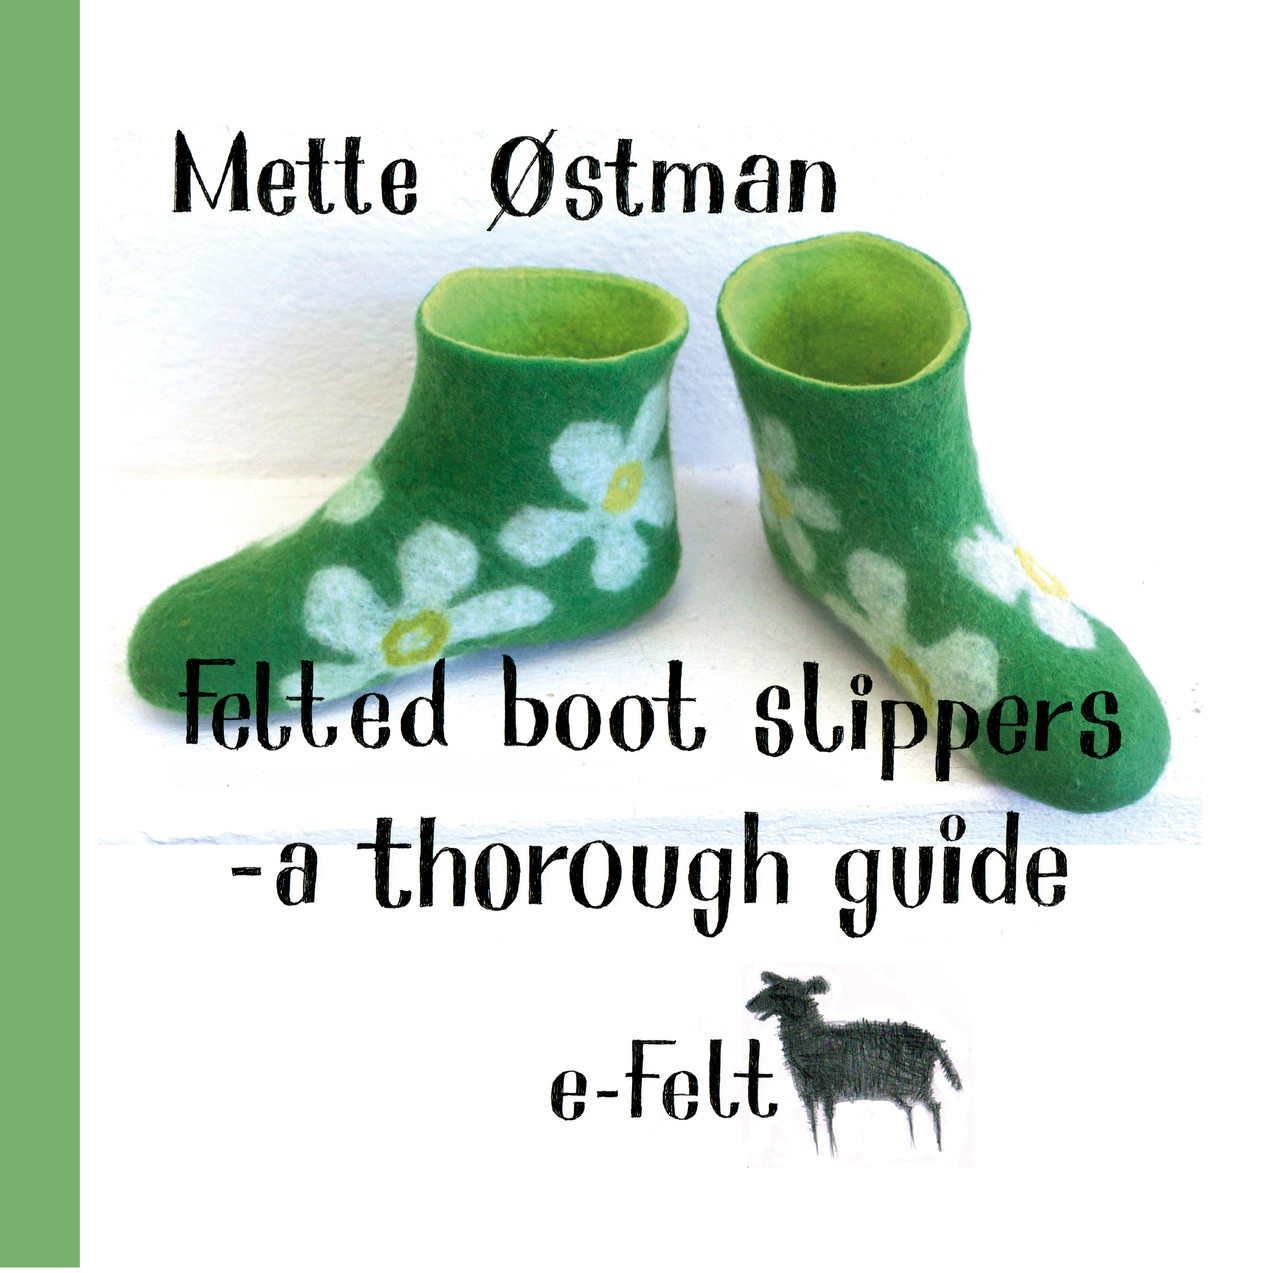 Felted boot slippers frontpage